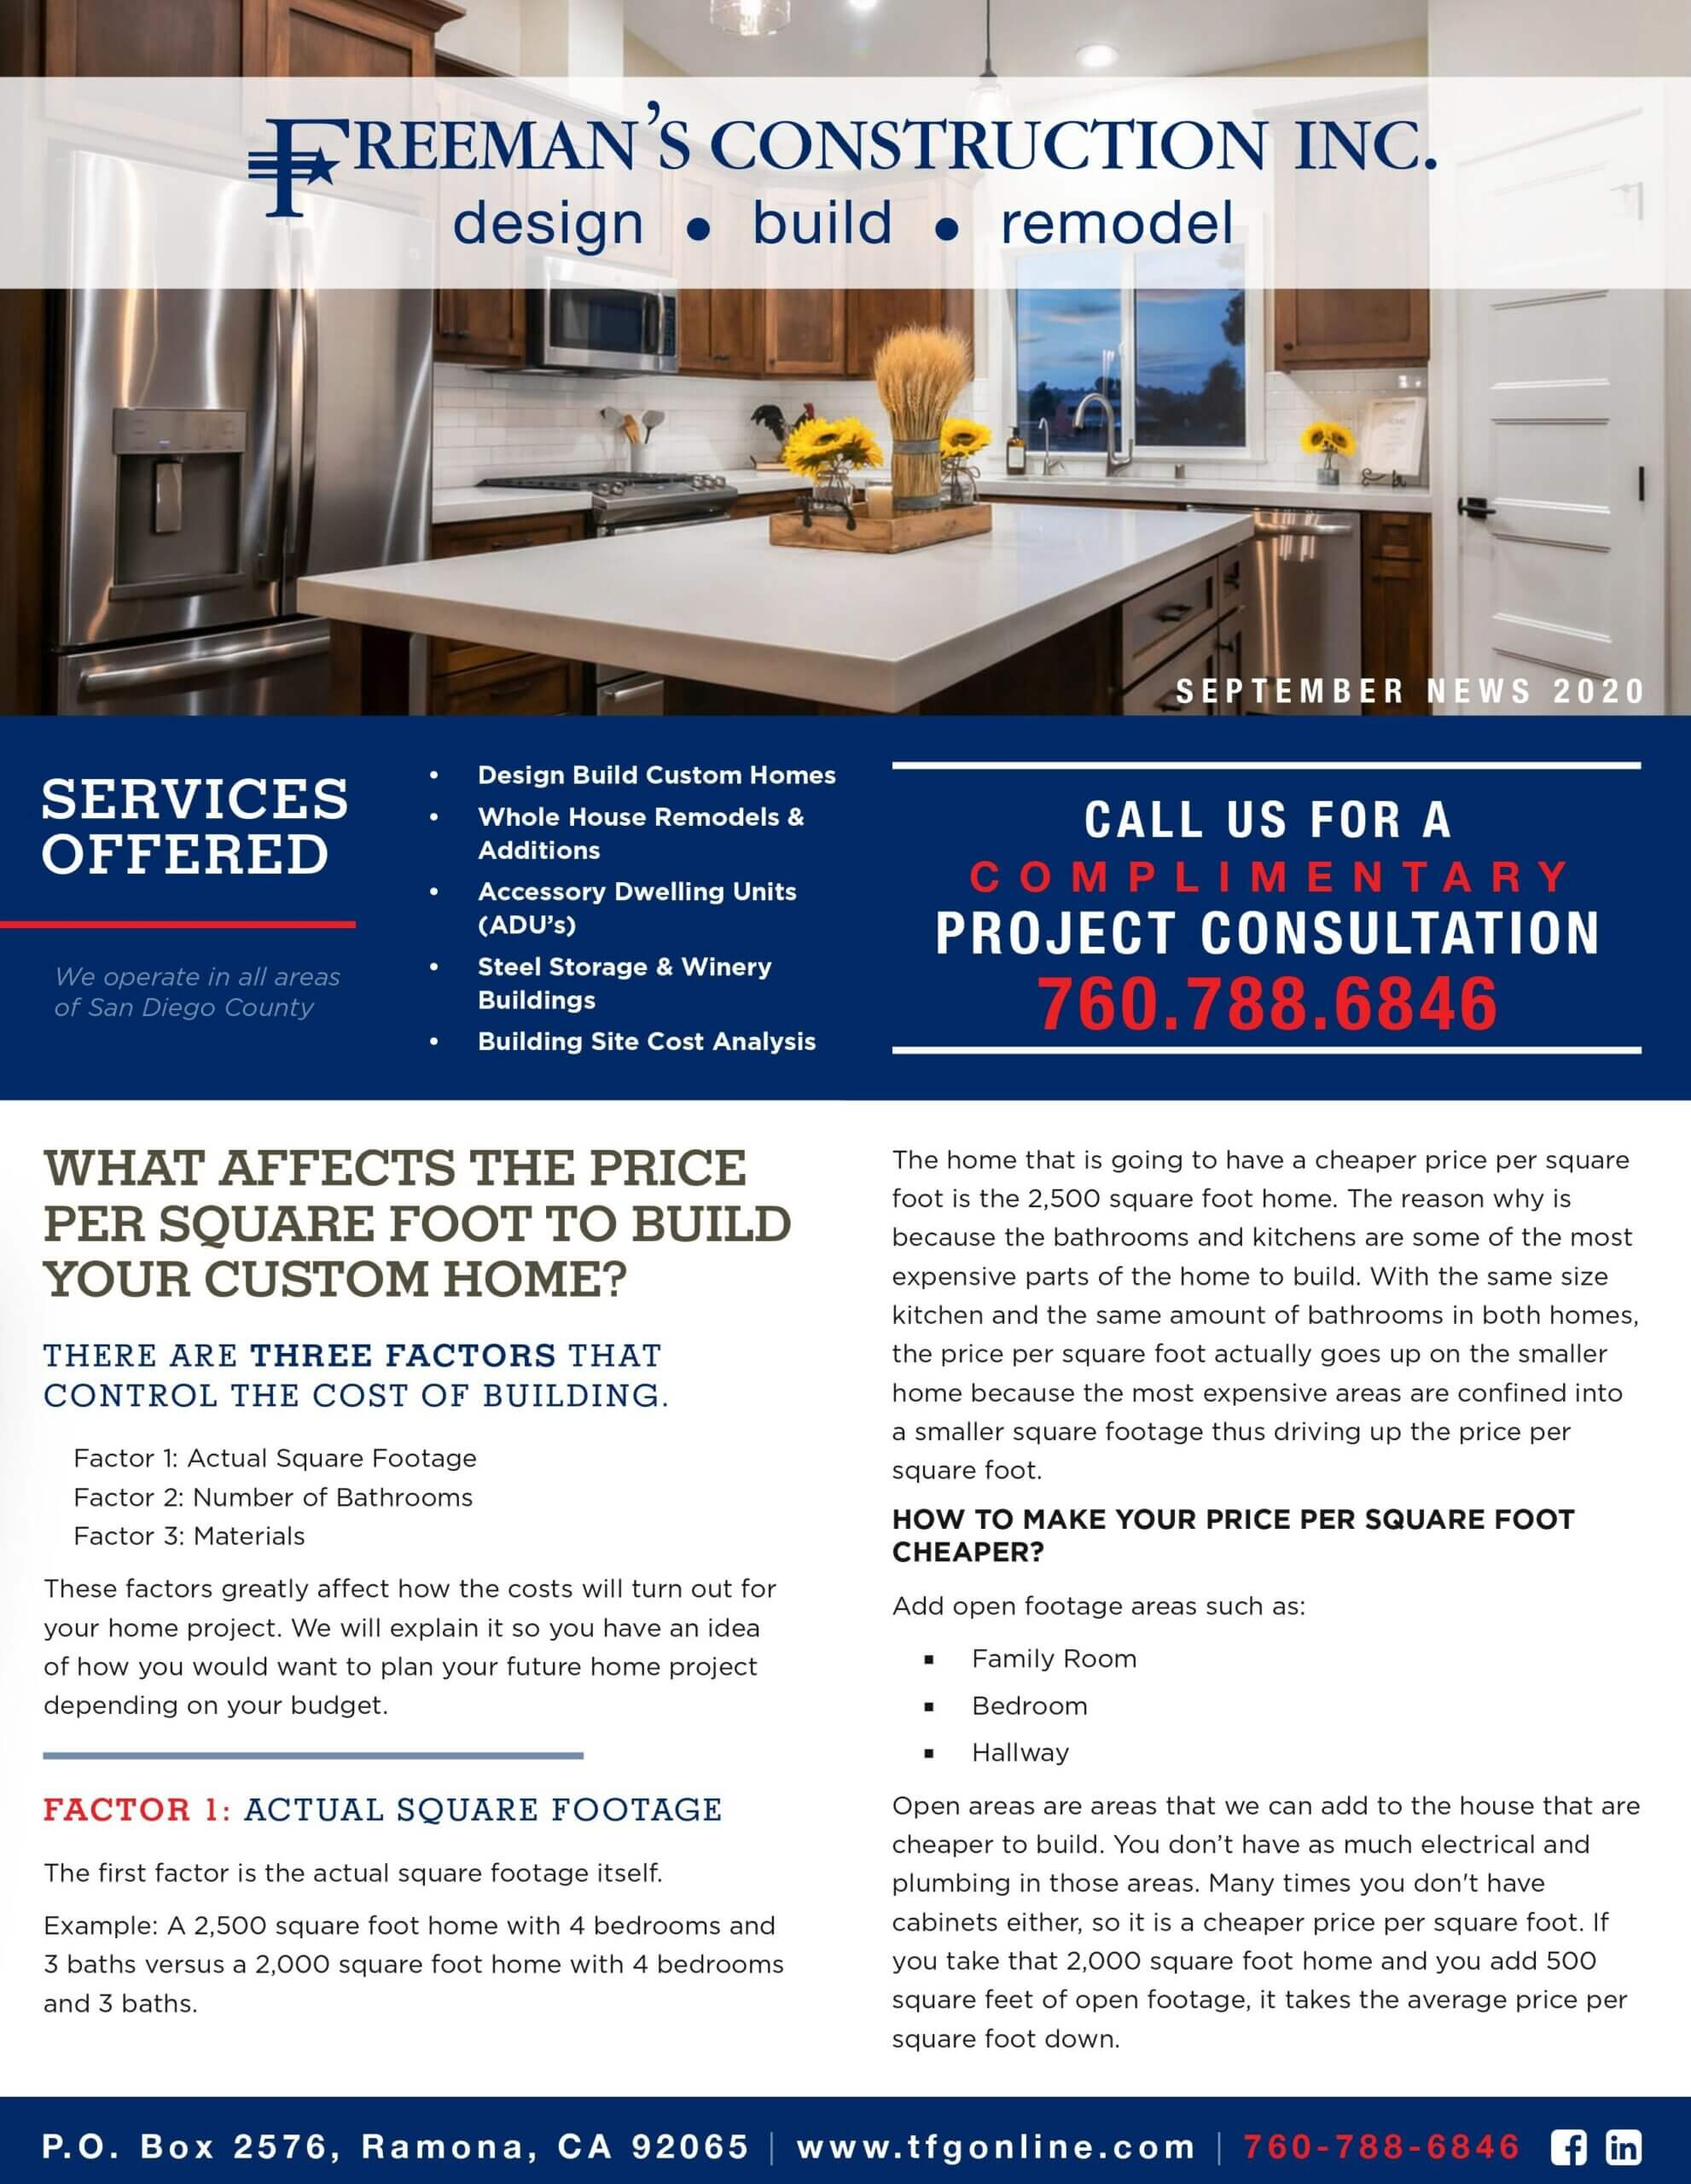 what-affects-the-price-per-square-foot-when-building-a-custom-home